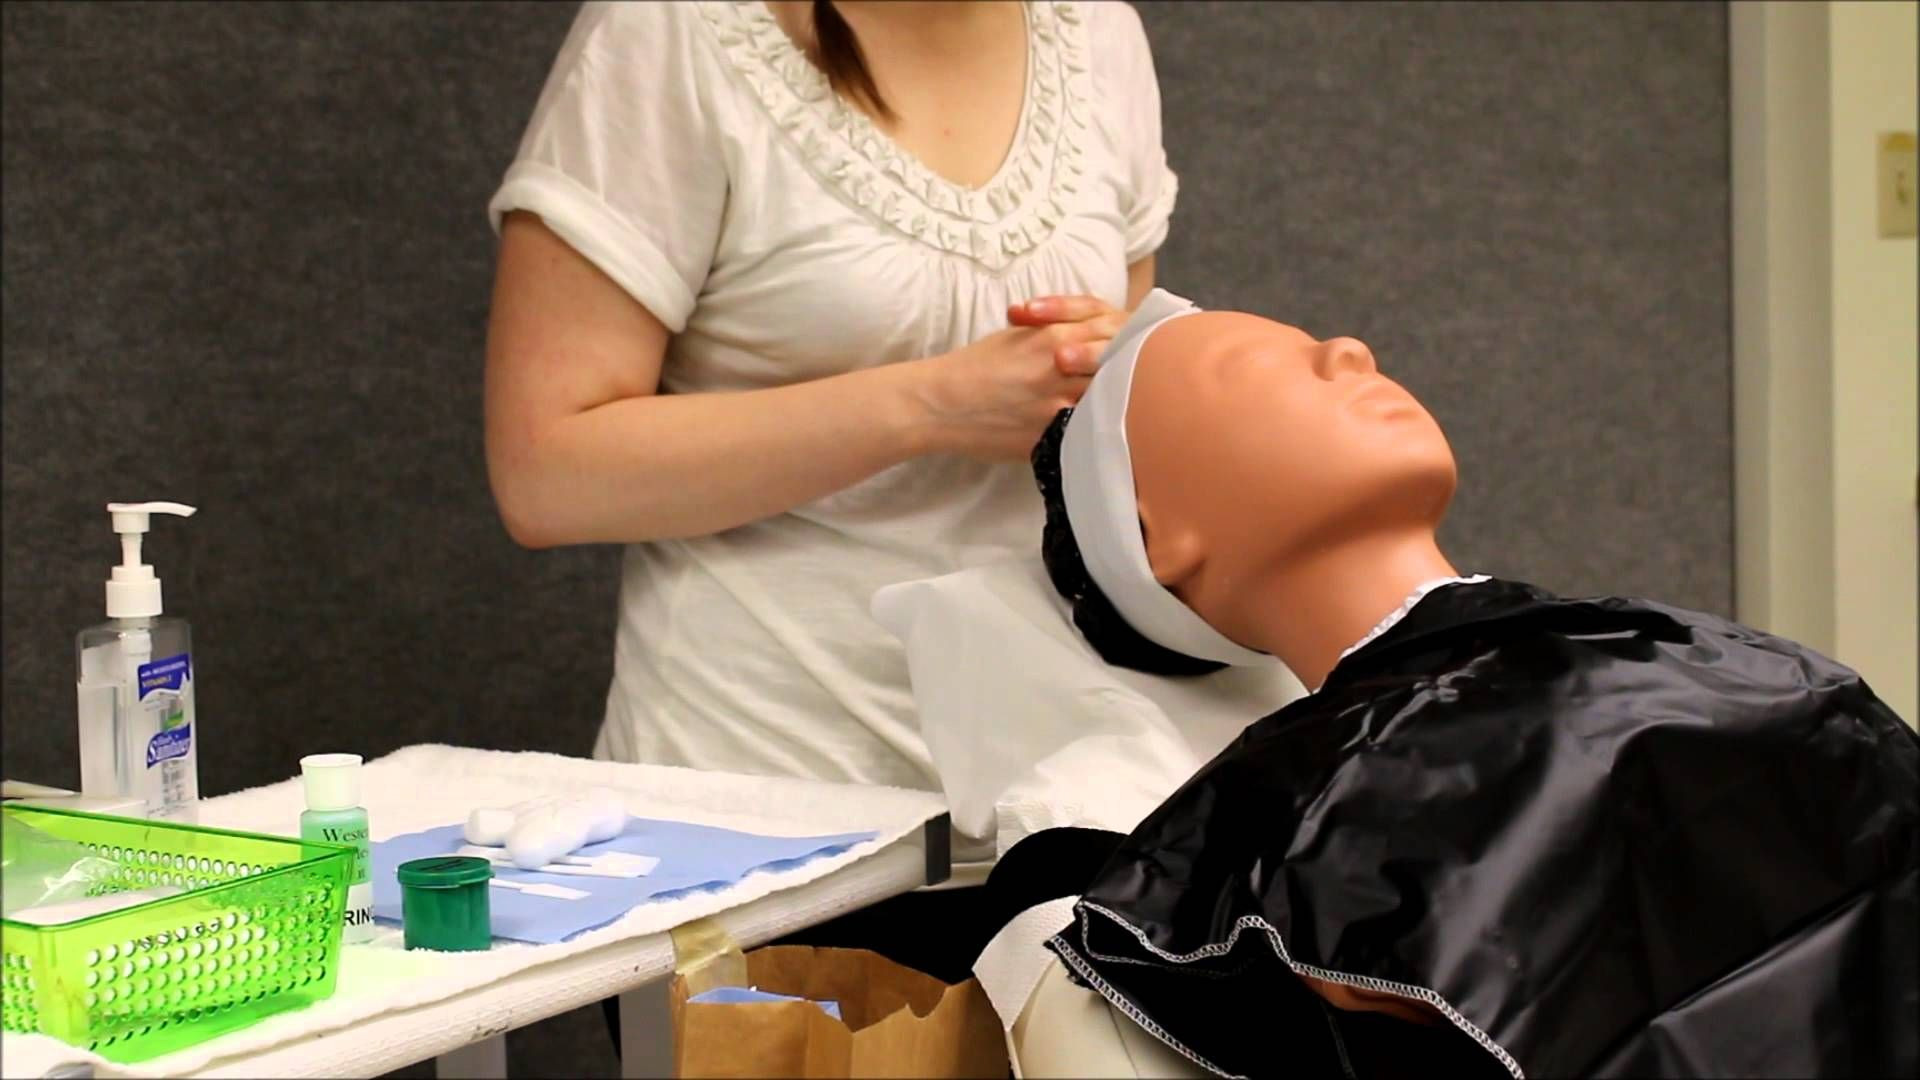 State Board Exam Prep Video Massage Cosmetology